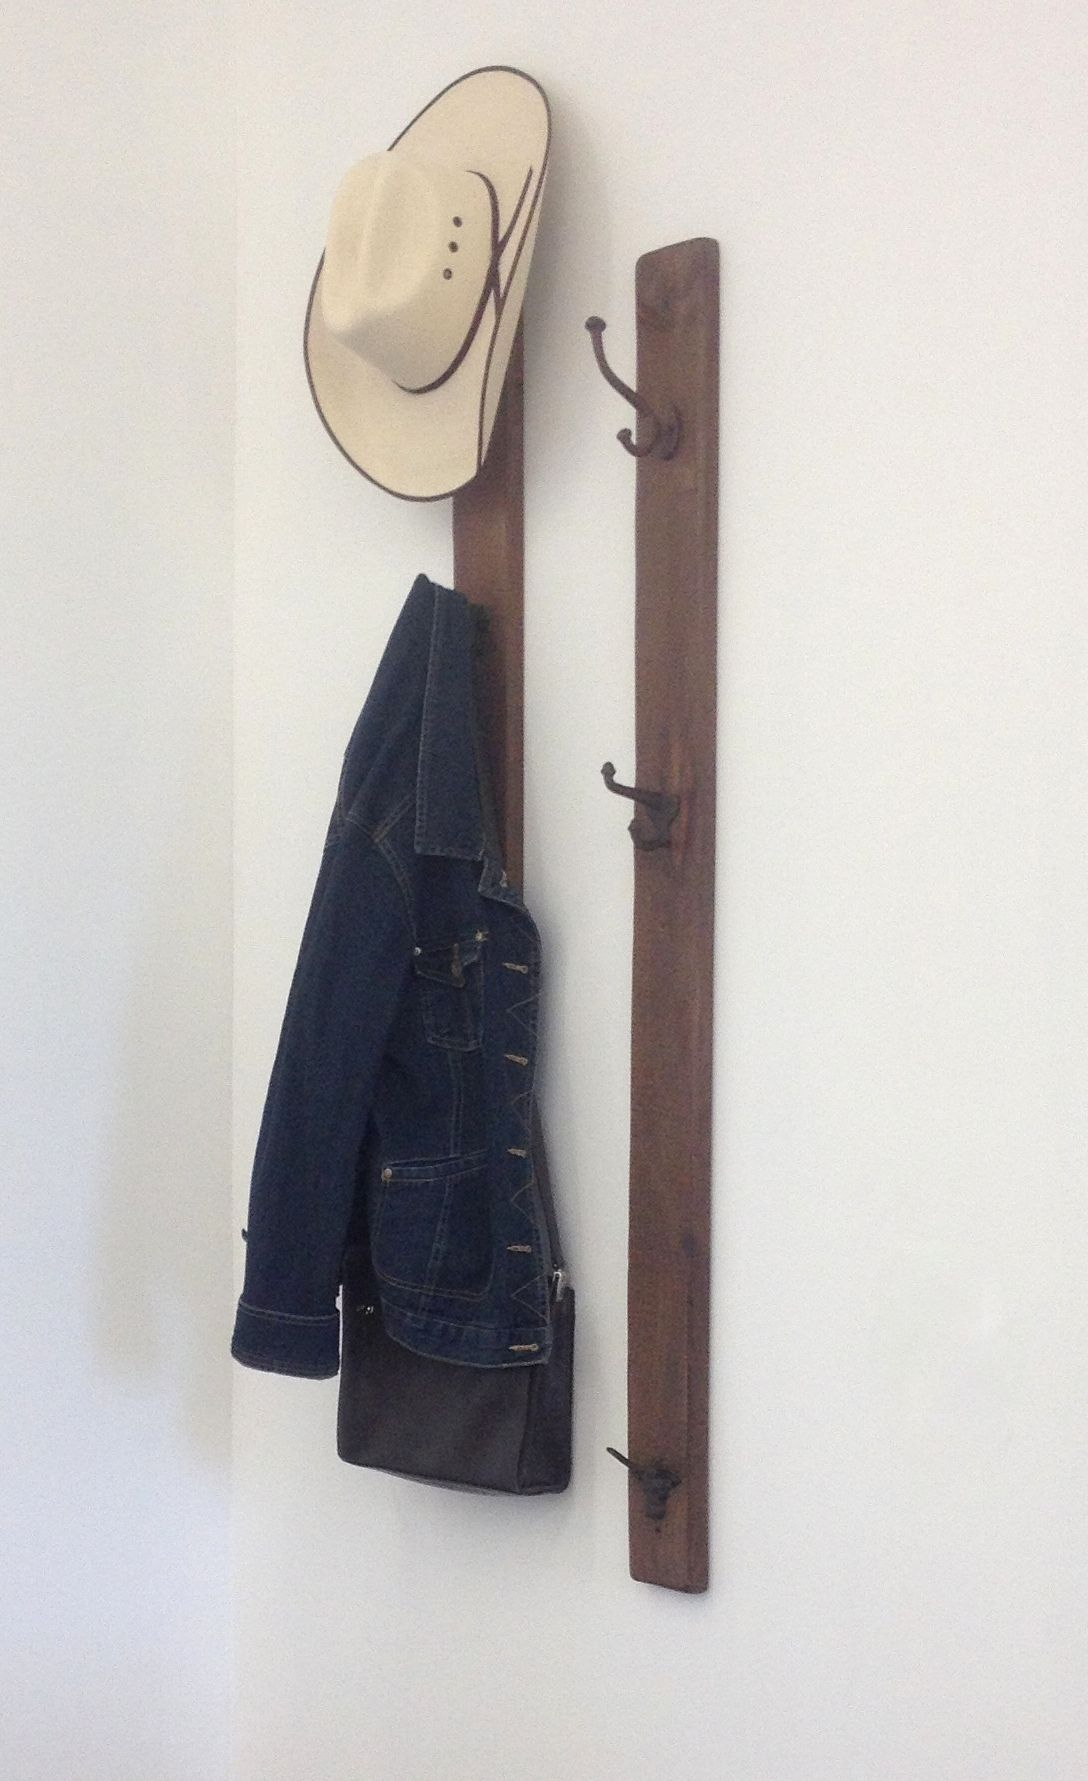 Rustic Coat Rack W/hooks Keeps Your Entry Or Mudroom Organized! Holds  Cowboy Hats, Coats And Purses.